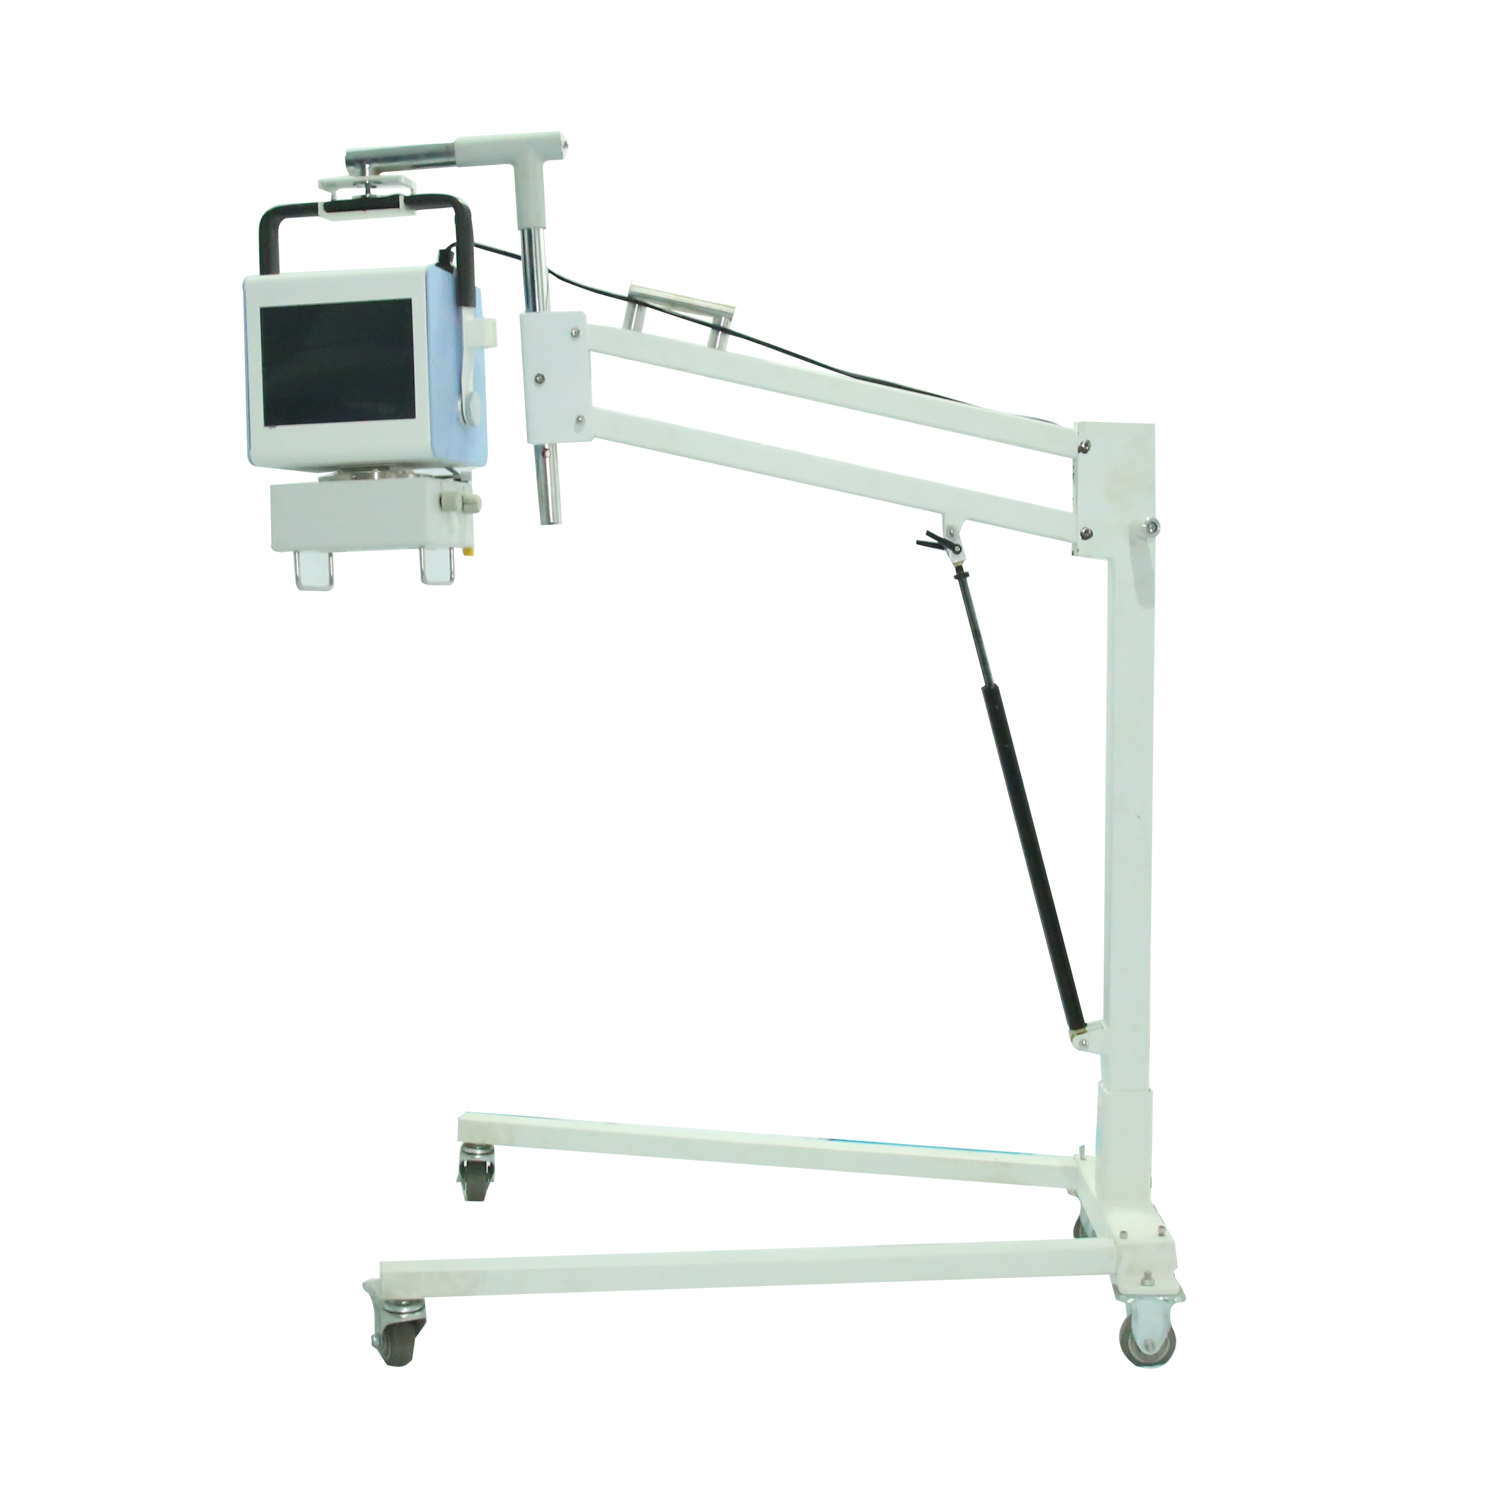 5kW 100mA High frequency portable & mobile x-ray machine